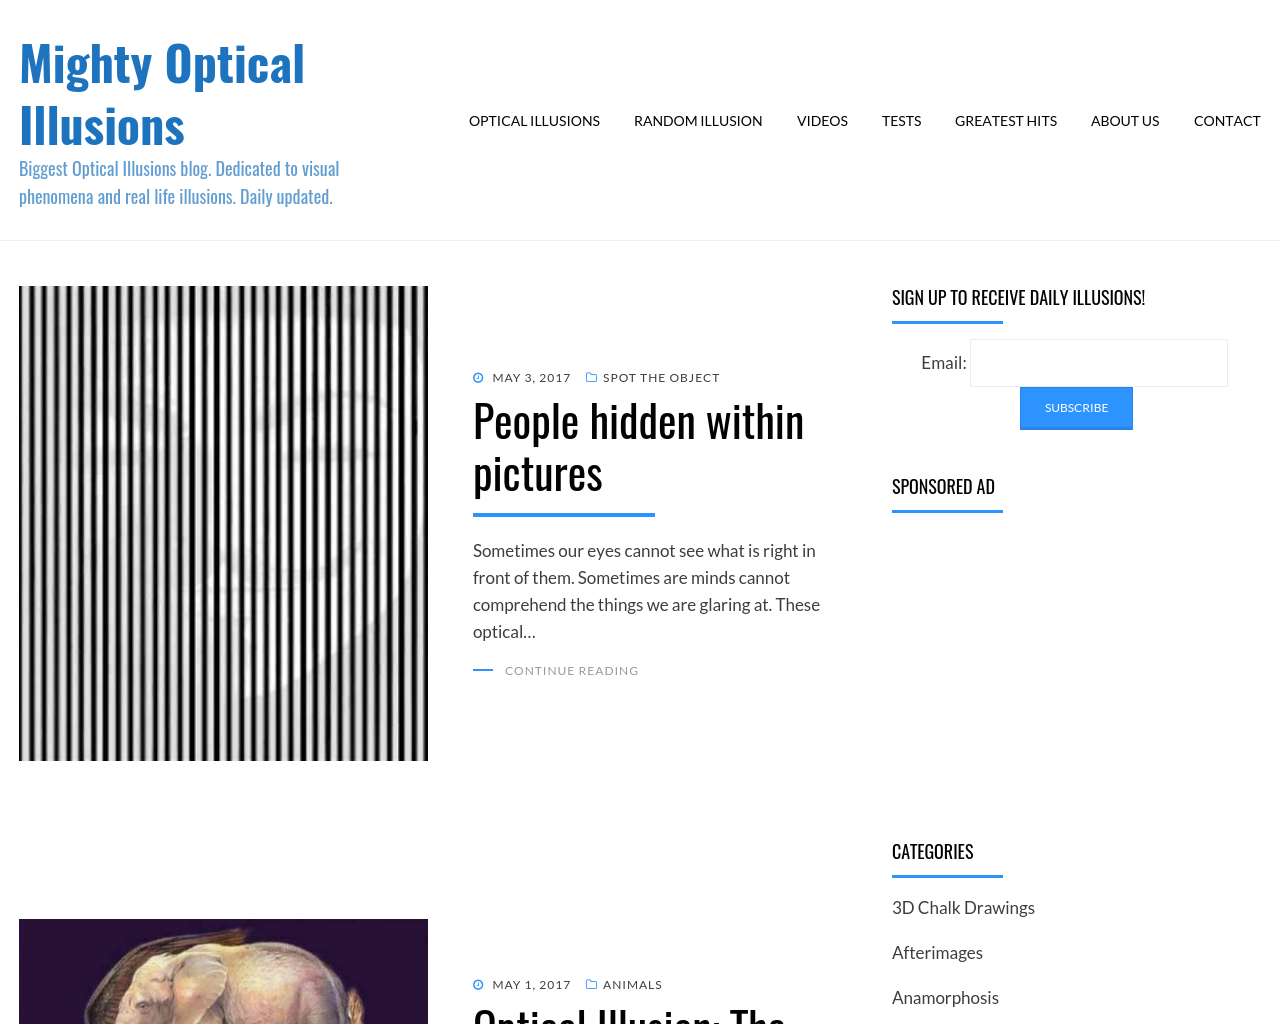 Mighty-Optical-Illusions-Advertising-Reviews-Pricing